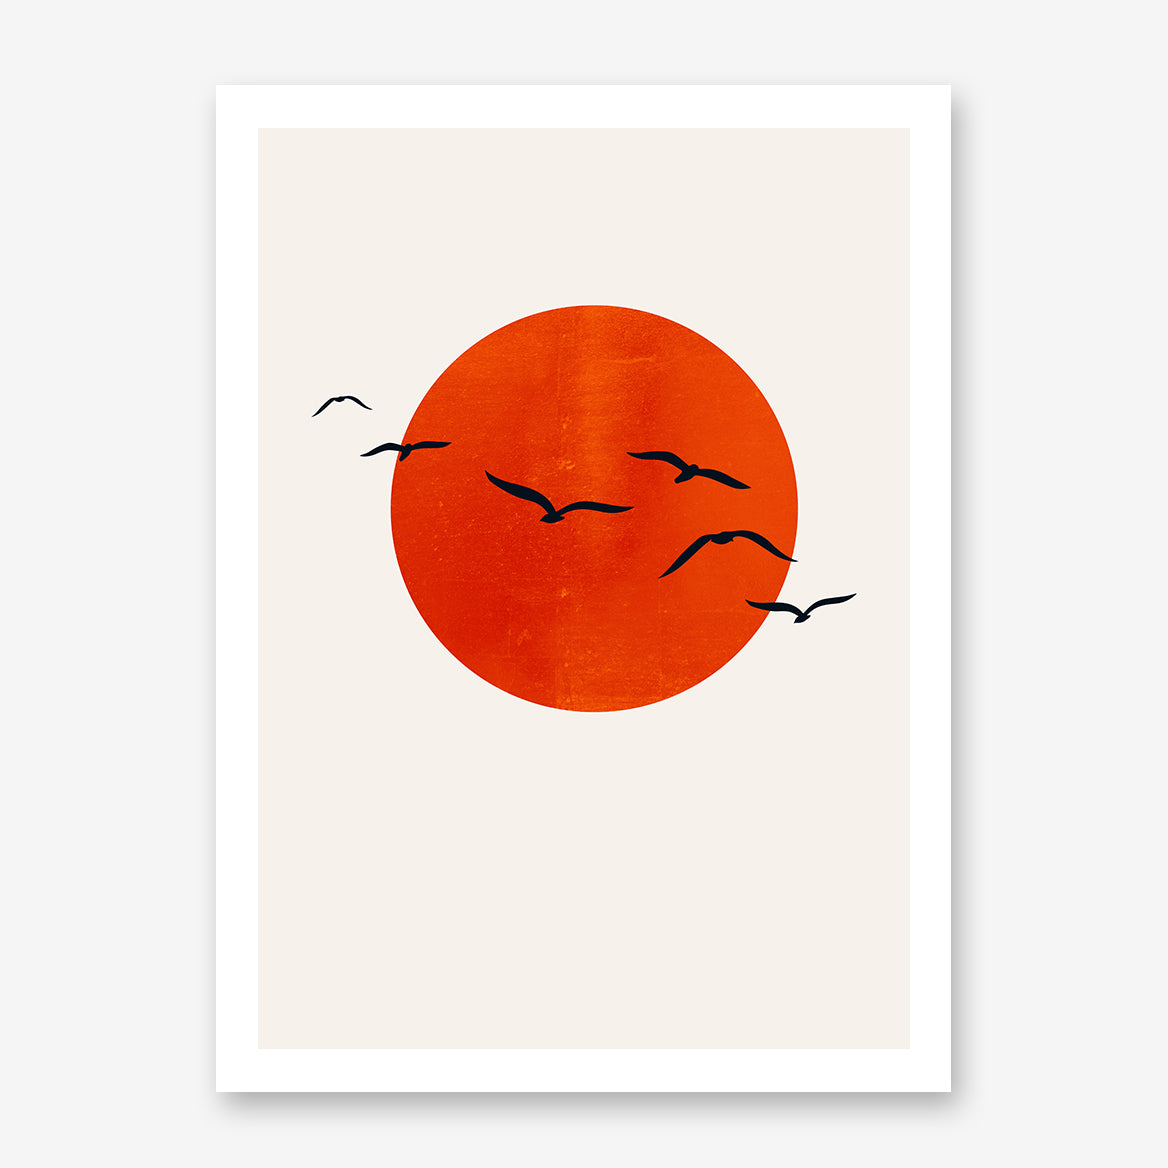 Poster print by Kubistika with intense orange sun and black birds, on beige background